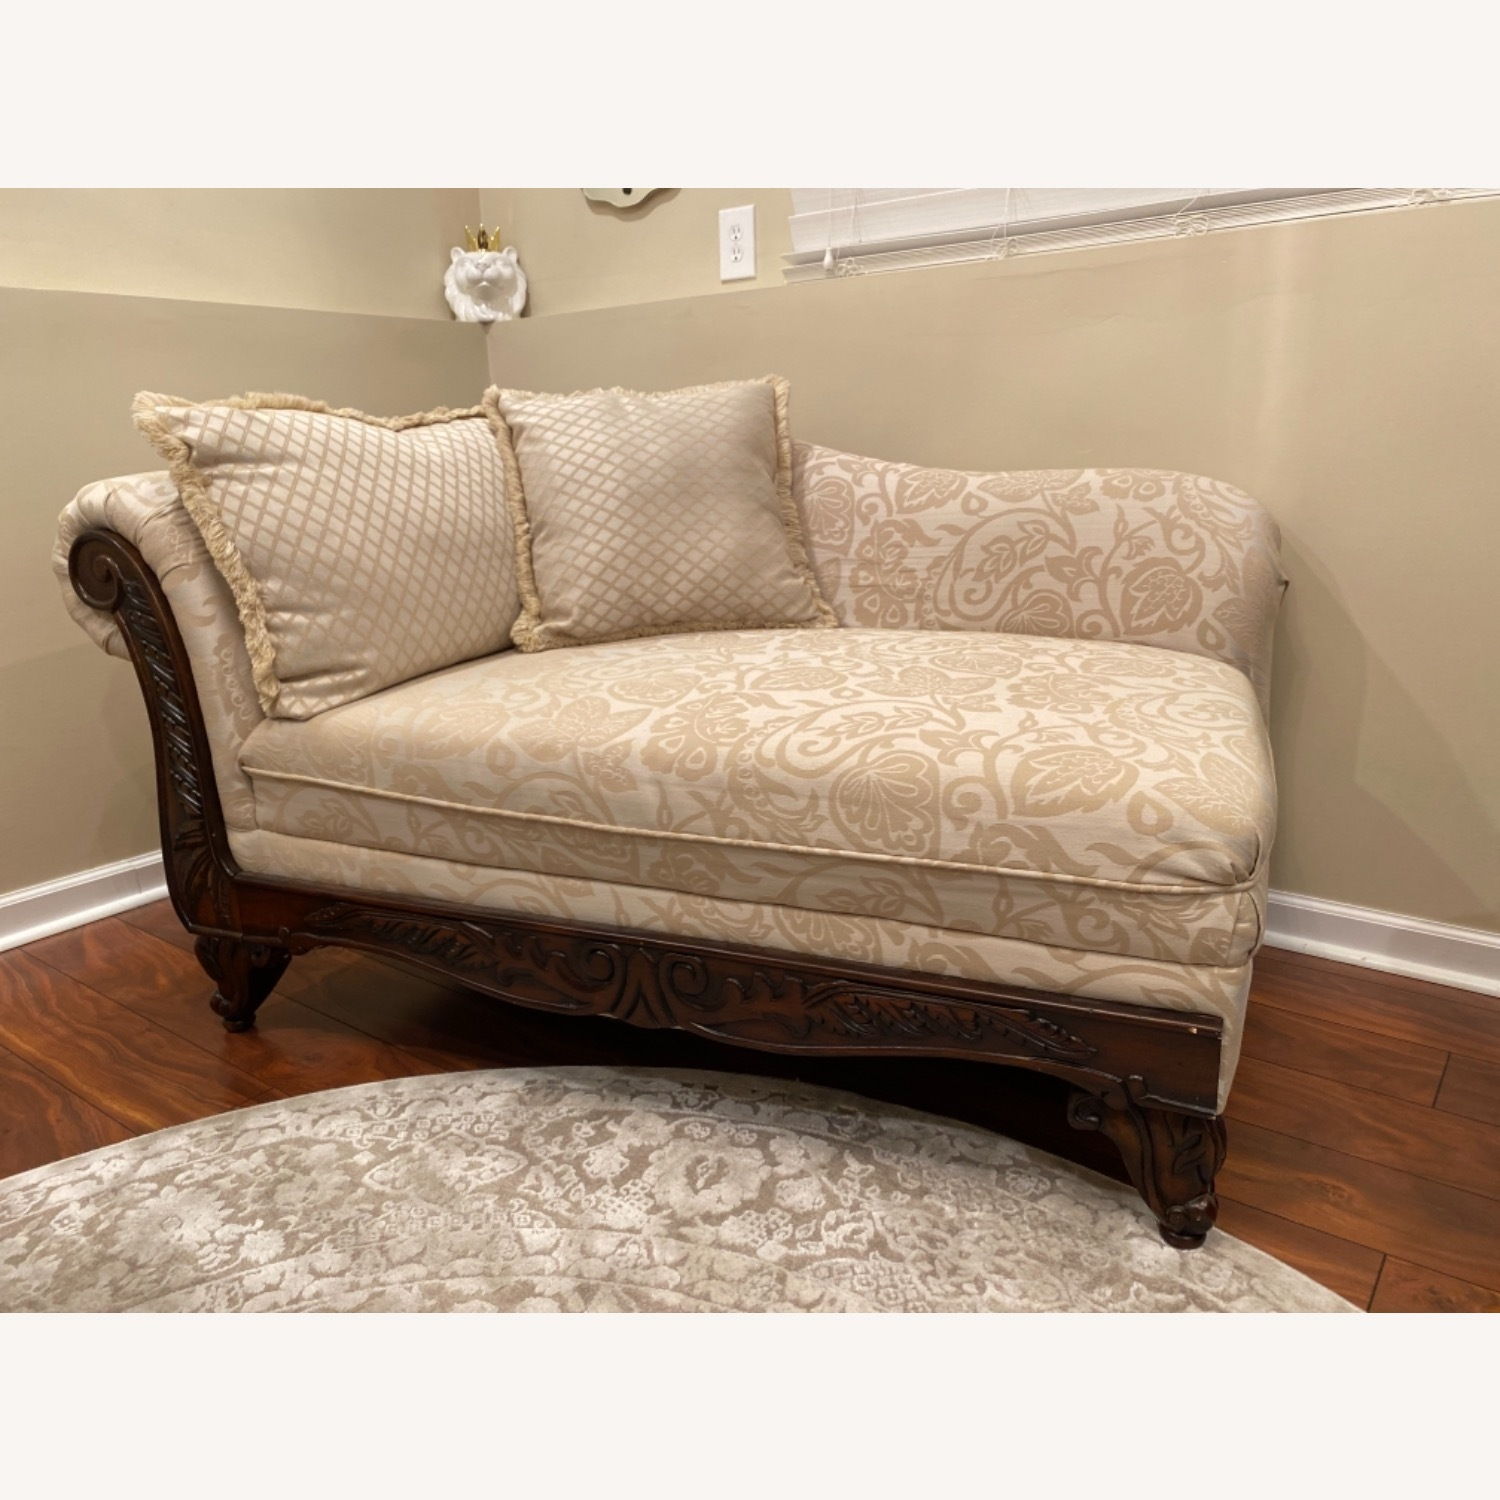 Broyhill Beige/Off White Chaise - image-1